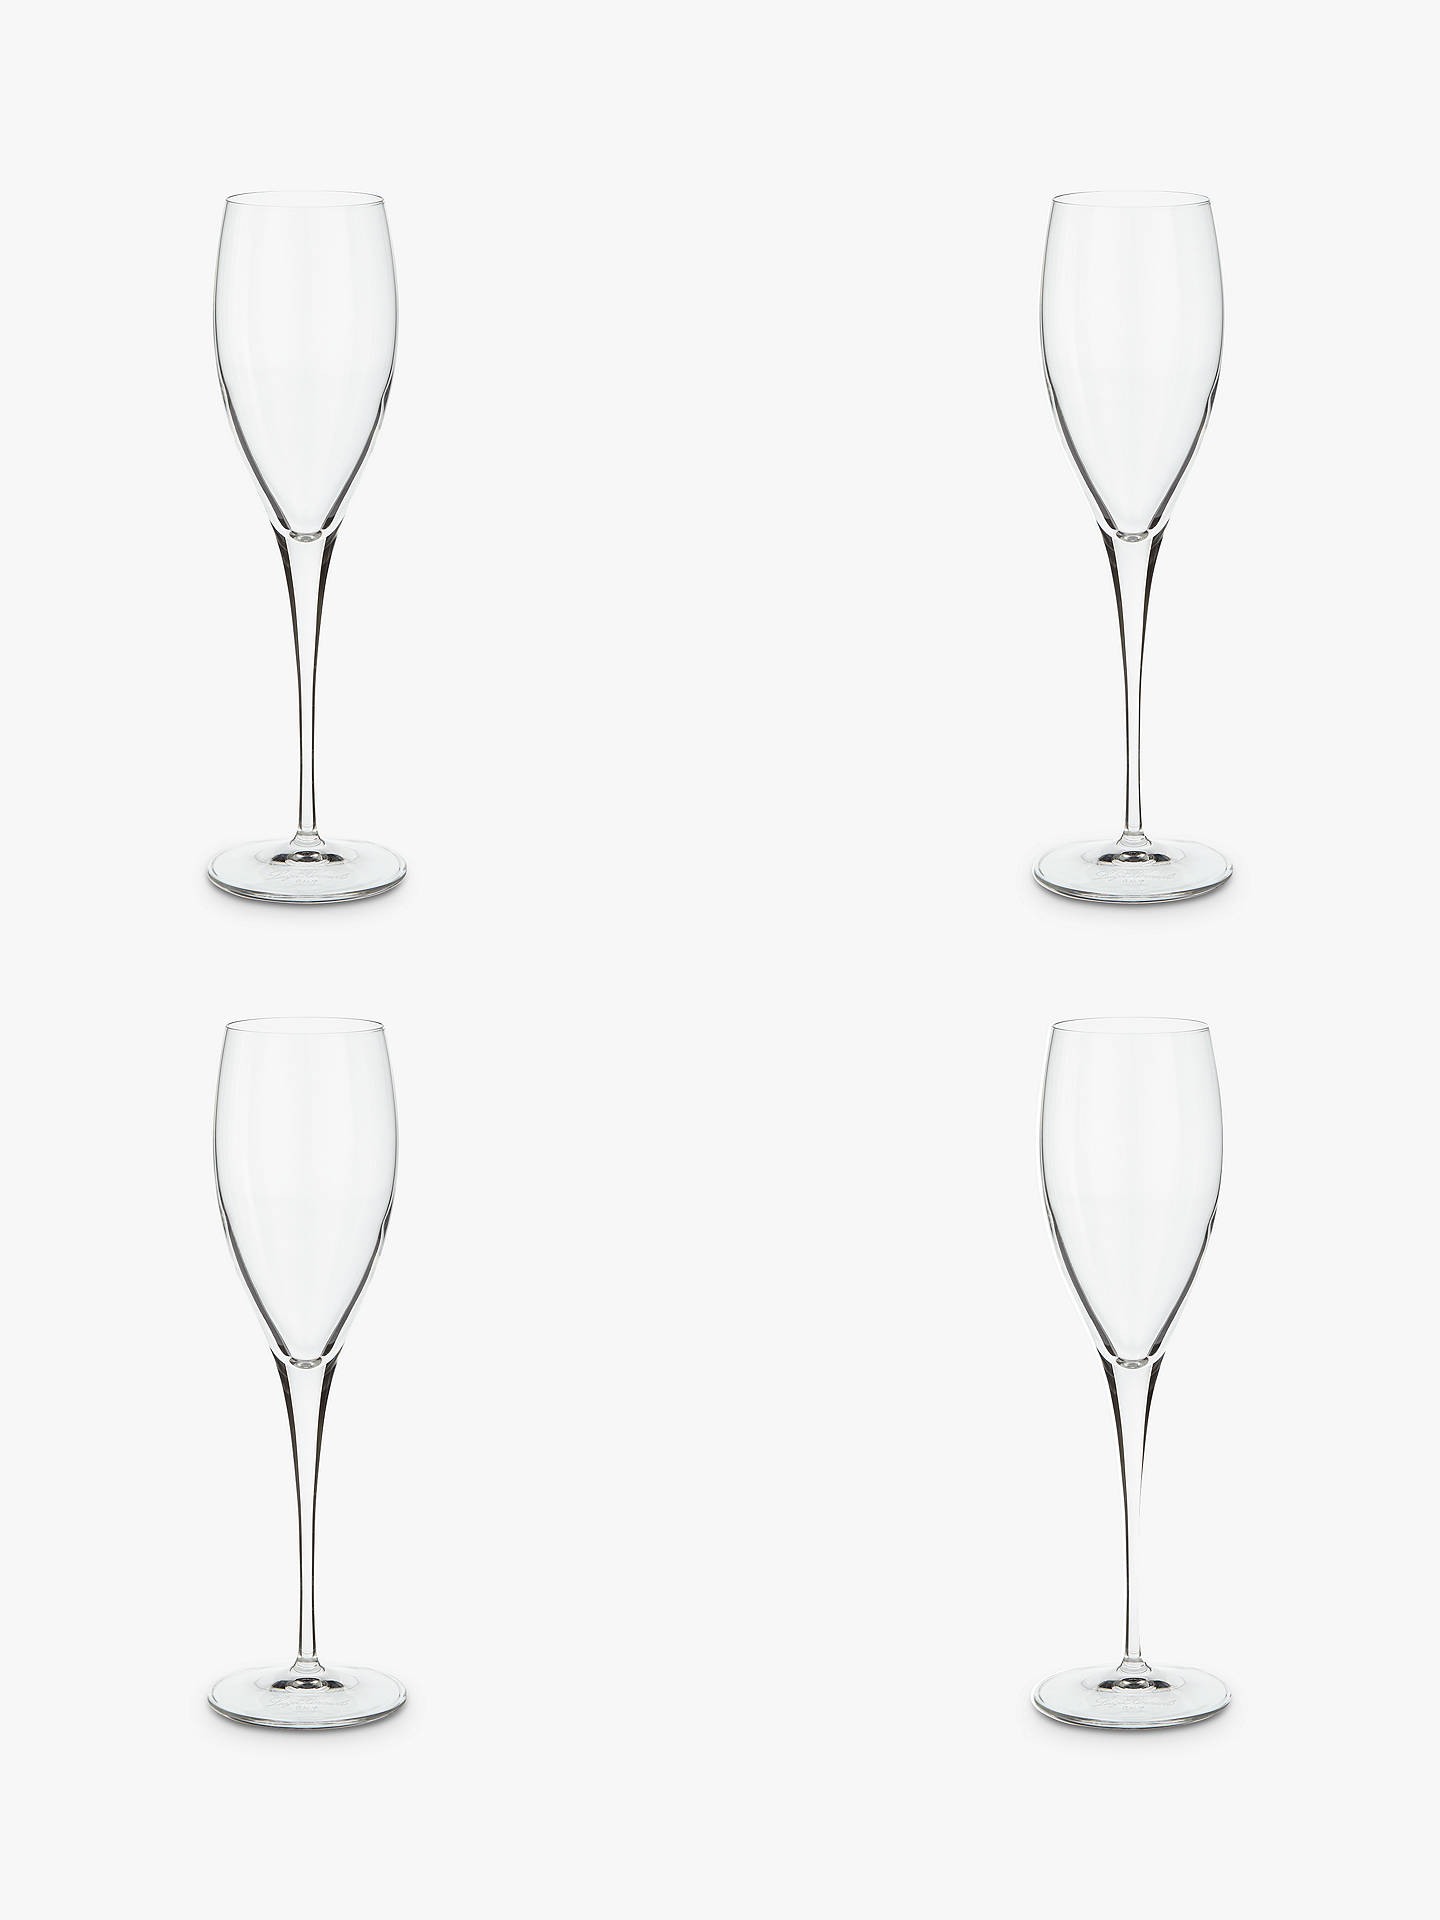 BuyJohn Lewis & Partners Michelangelo Champagne Flute, Set of 4, Clear, 220ml Online at johnlewis.com